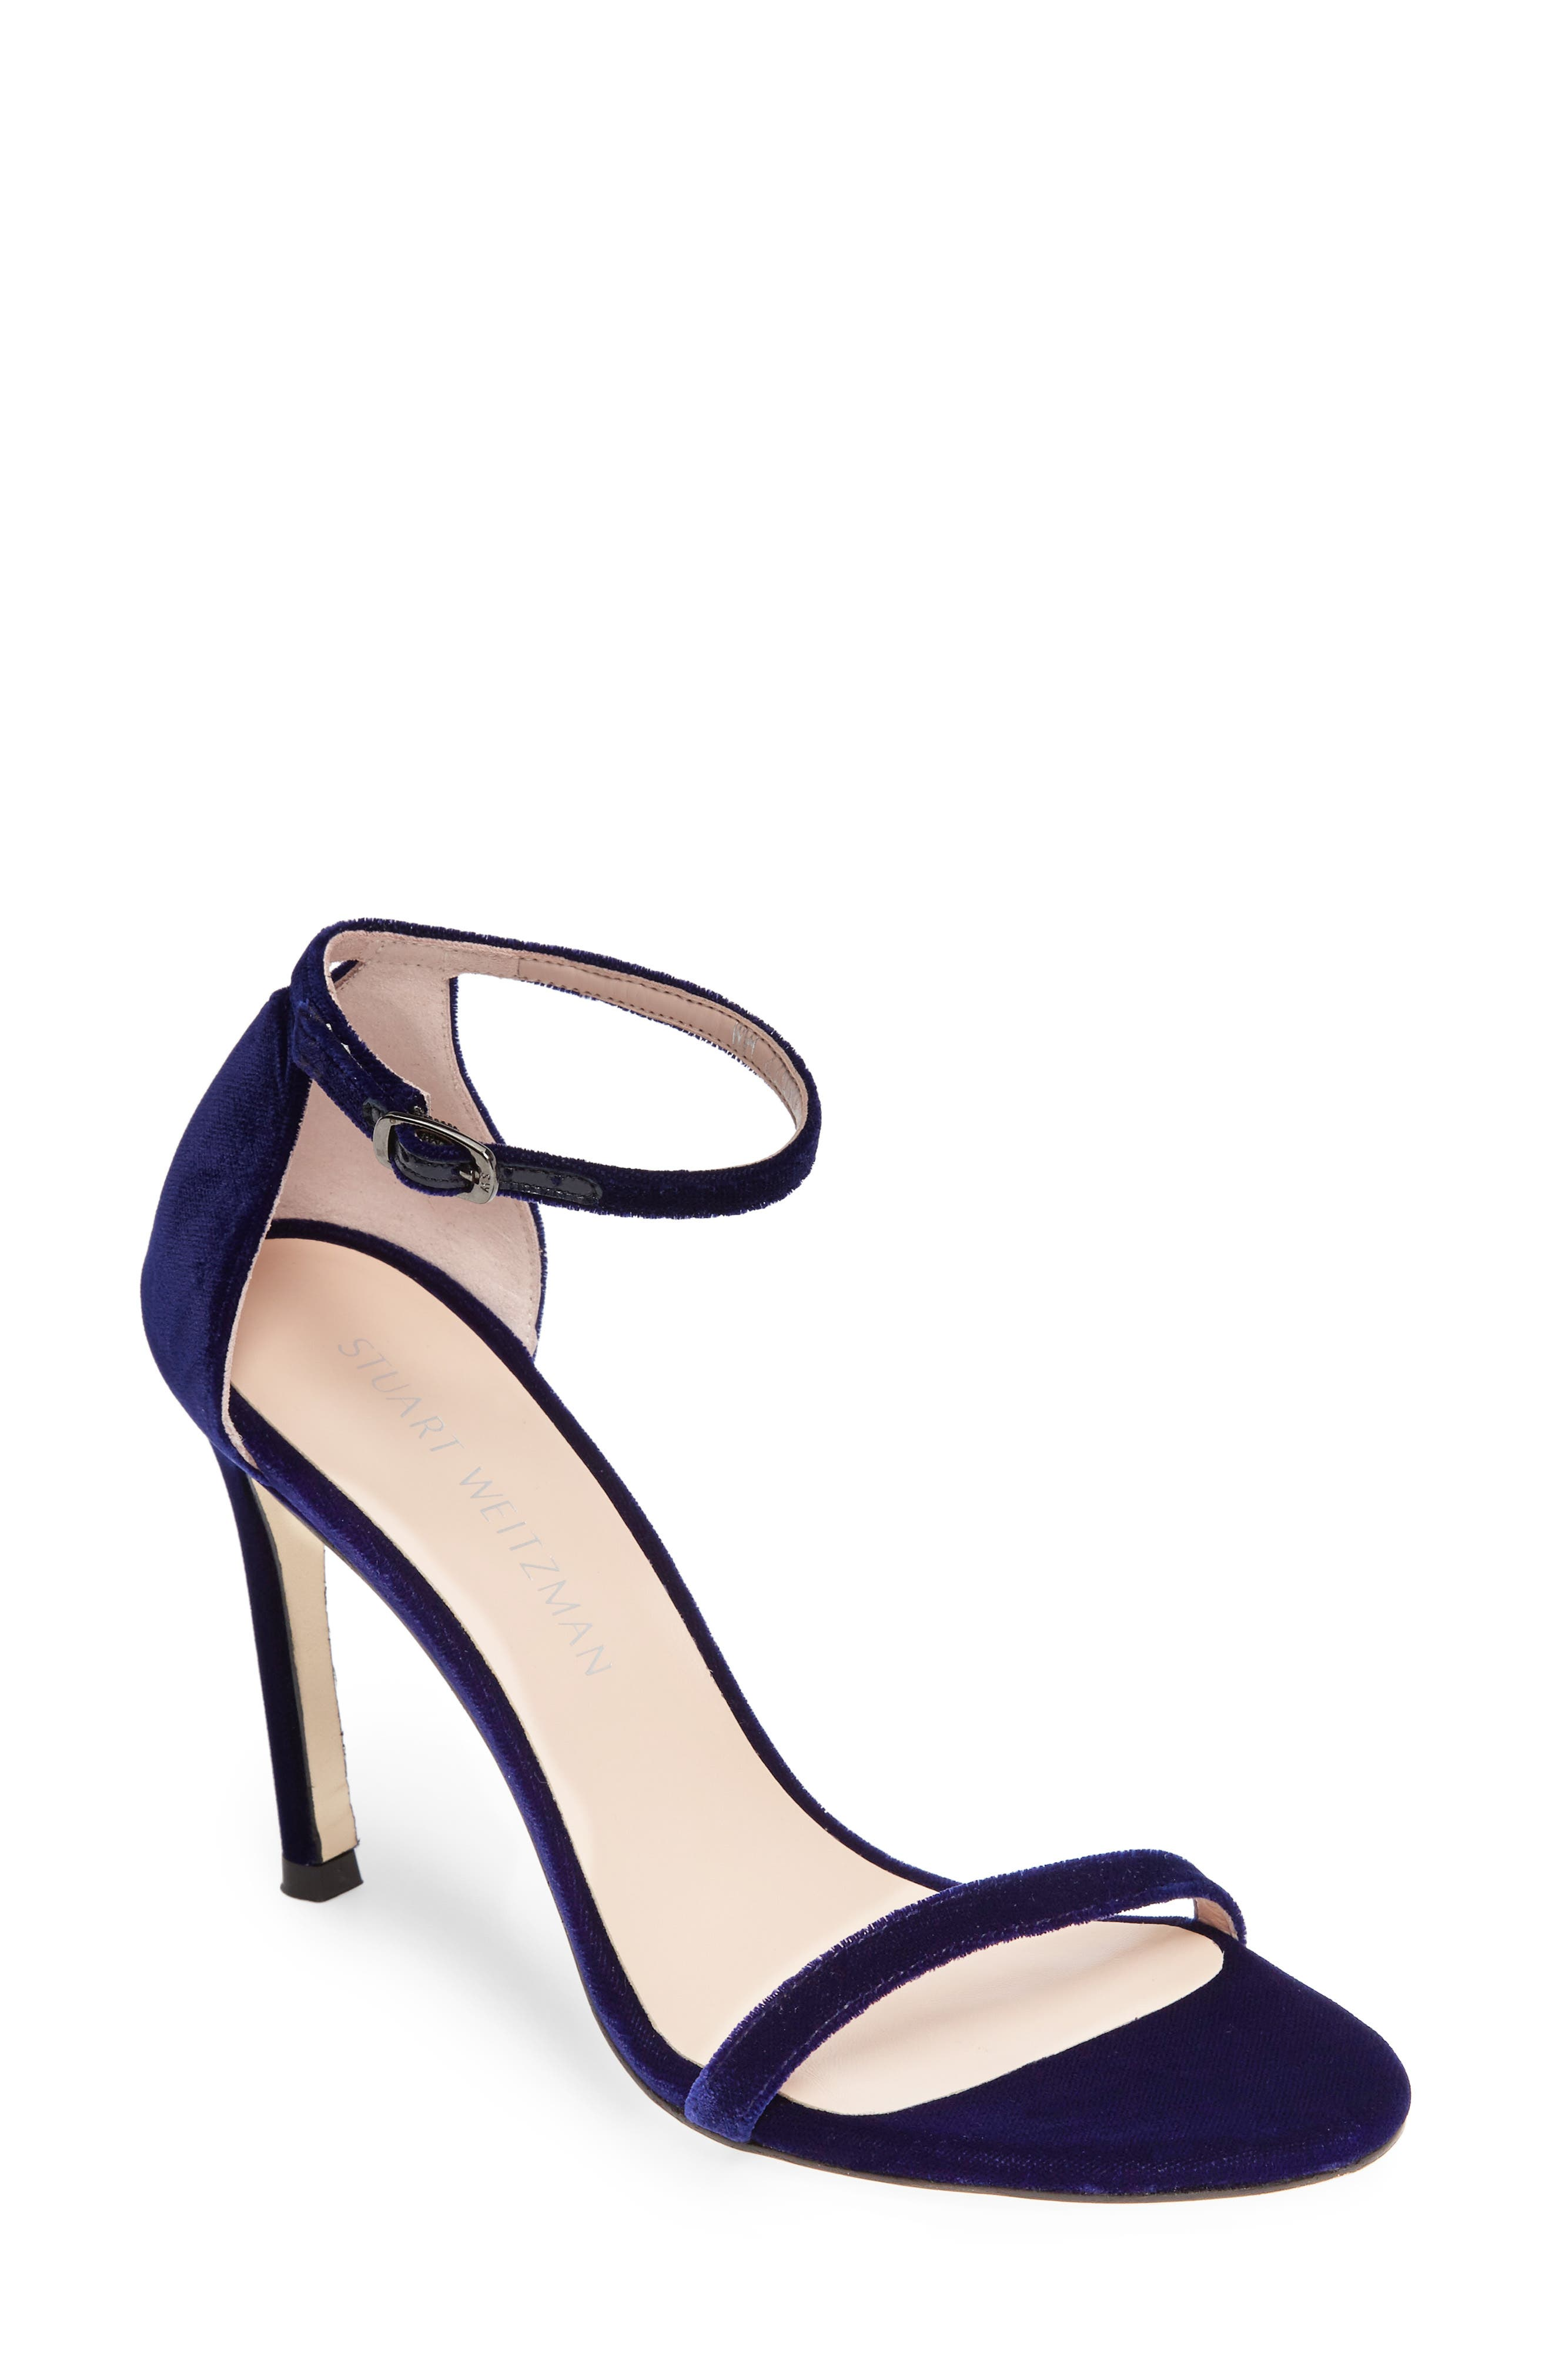 Nudistsong Ankle Strap Sandal,                             Main thumbnail 31, color,